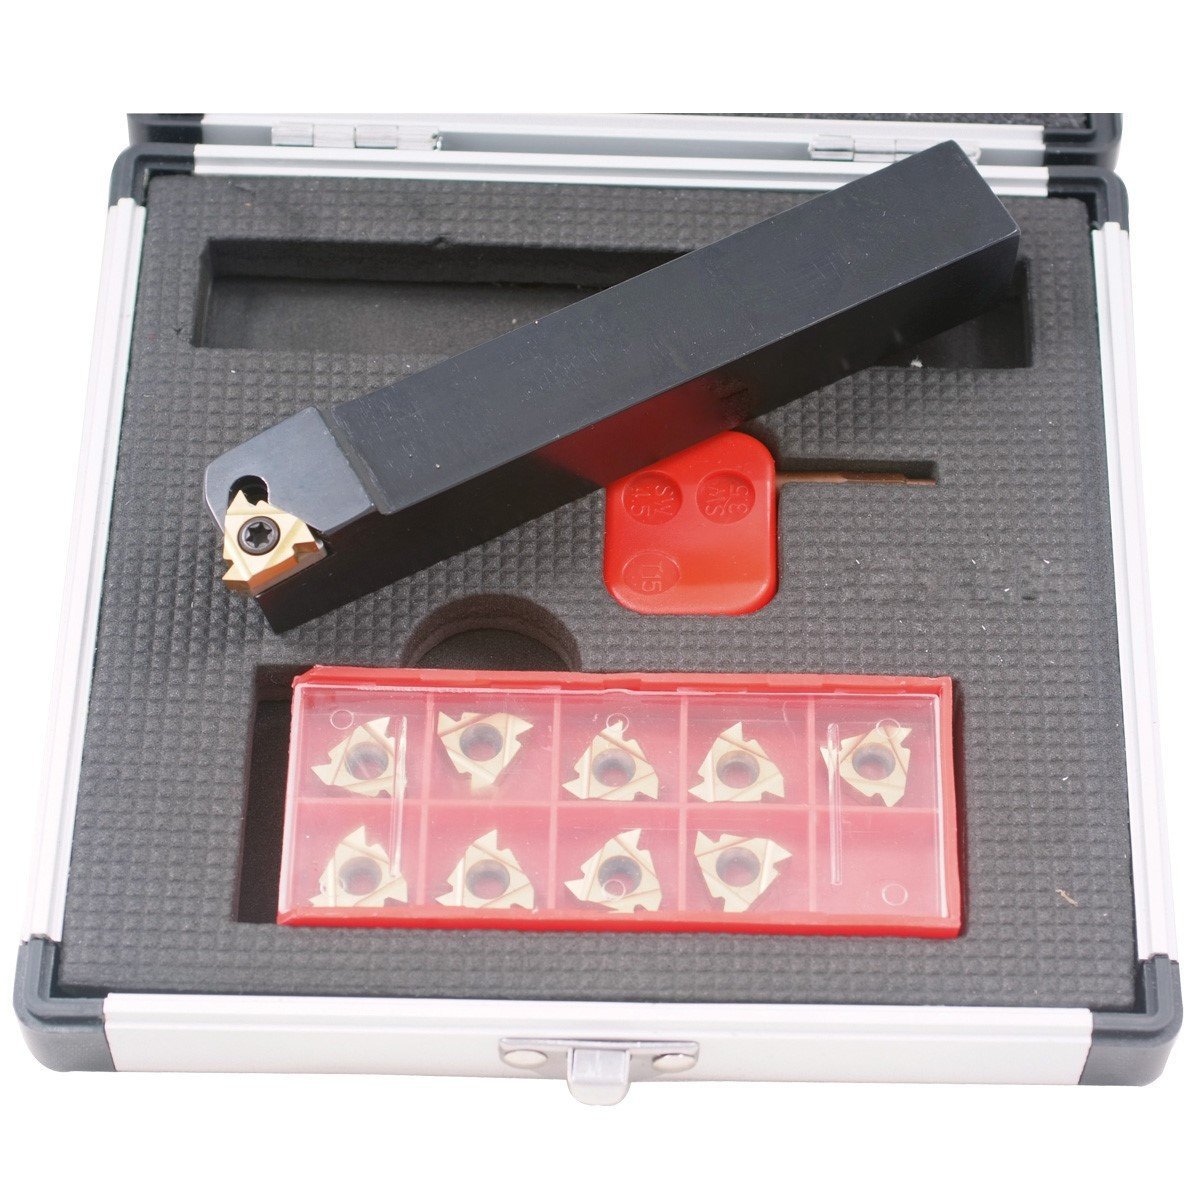 HHIP 2301-1625 External Indexable Threading Tool Holder and Insert Kit, 1/2''